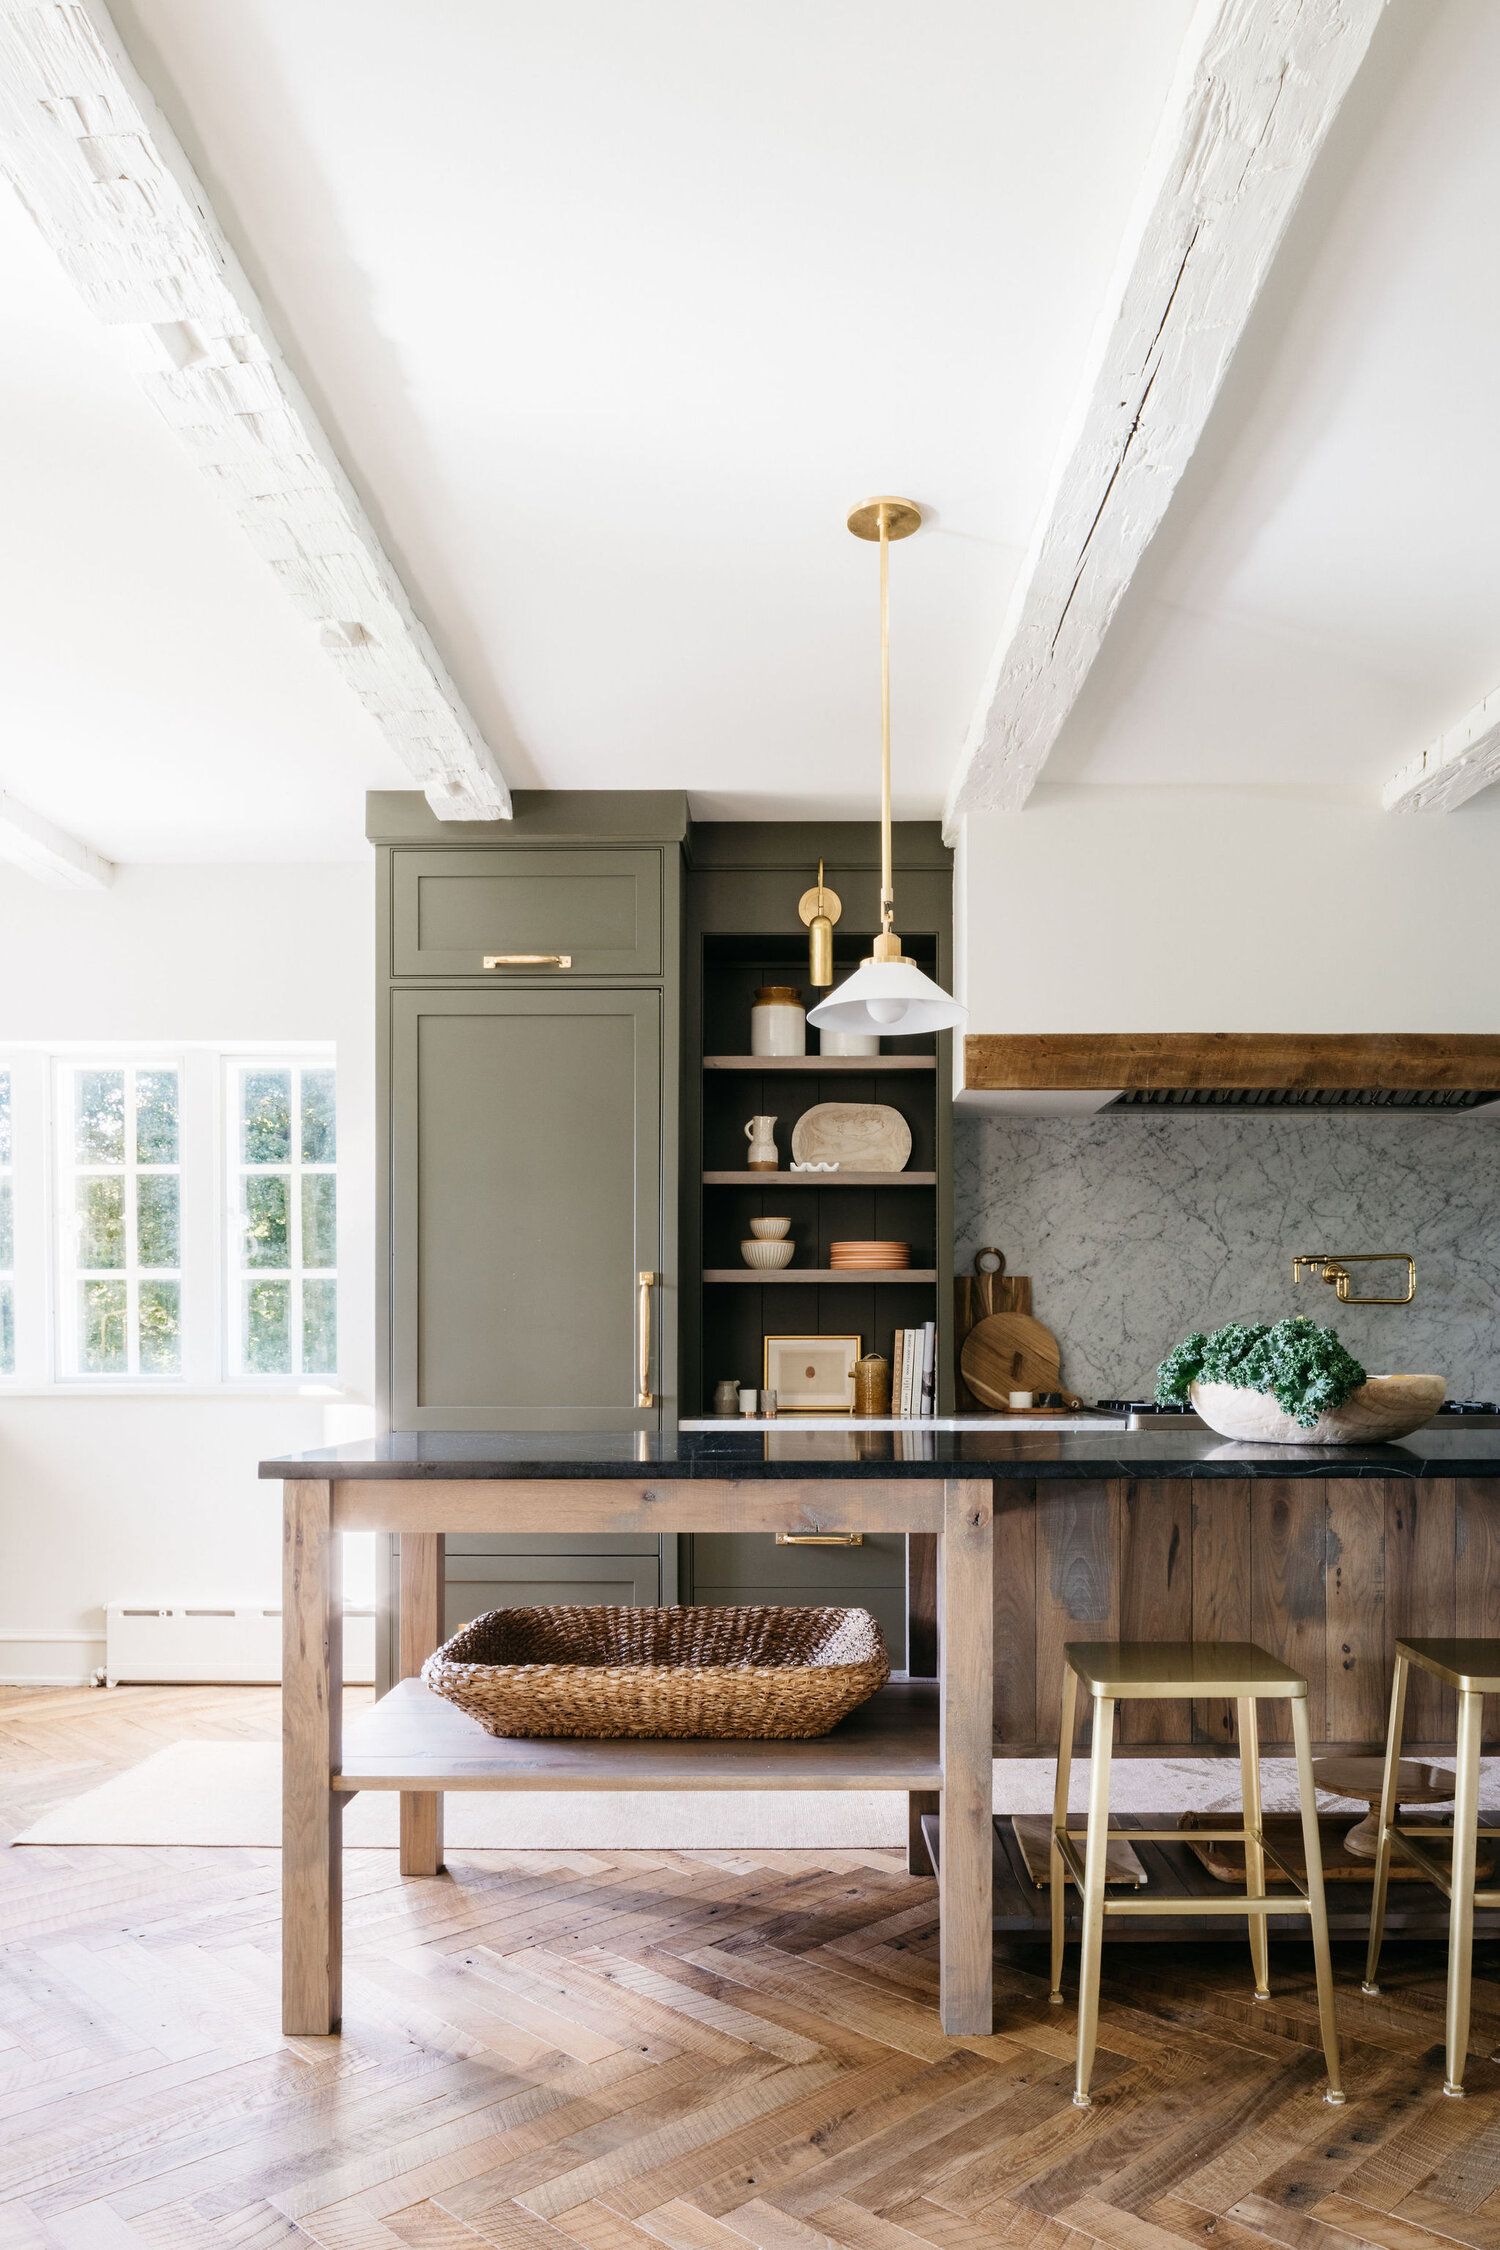 Olive, timber and marble kitchen.